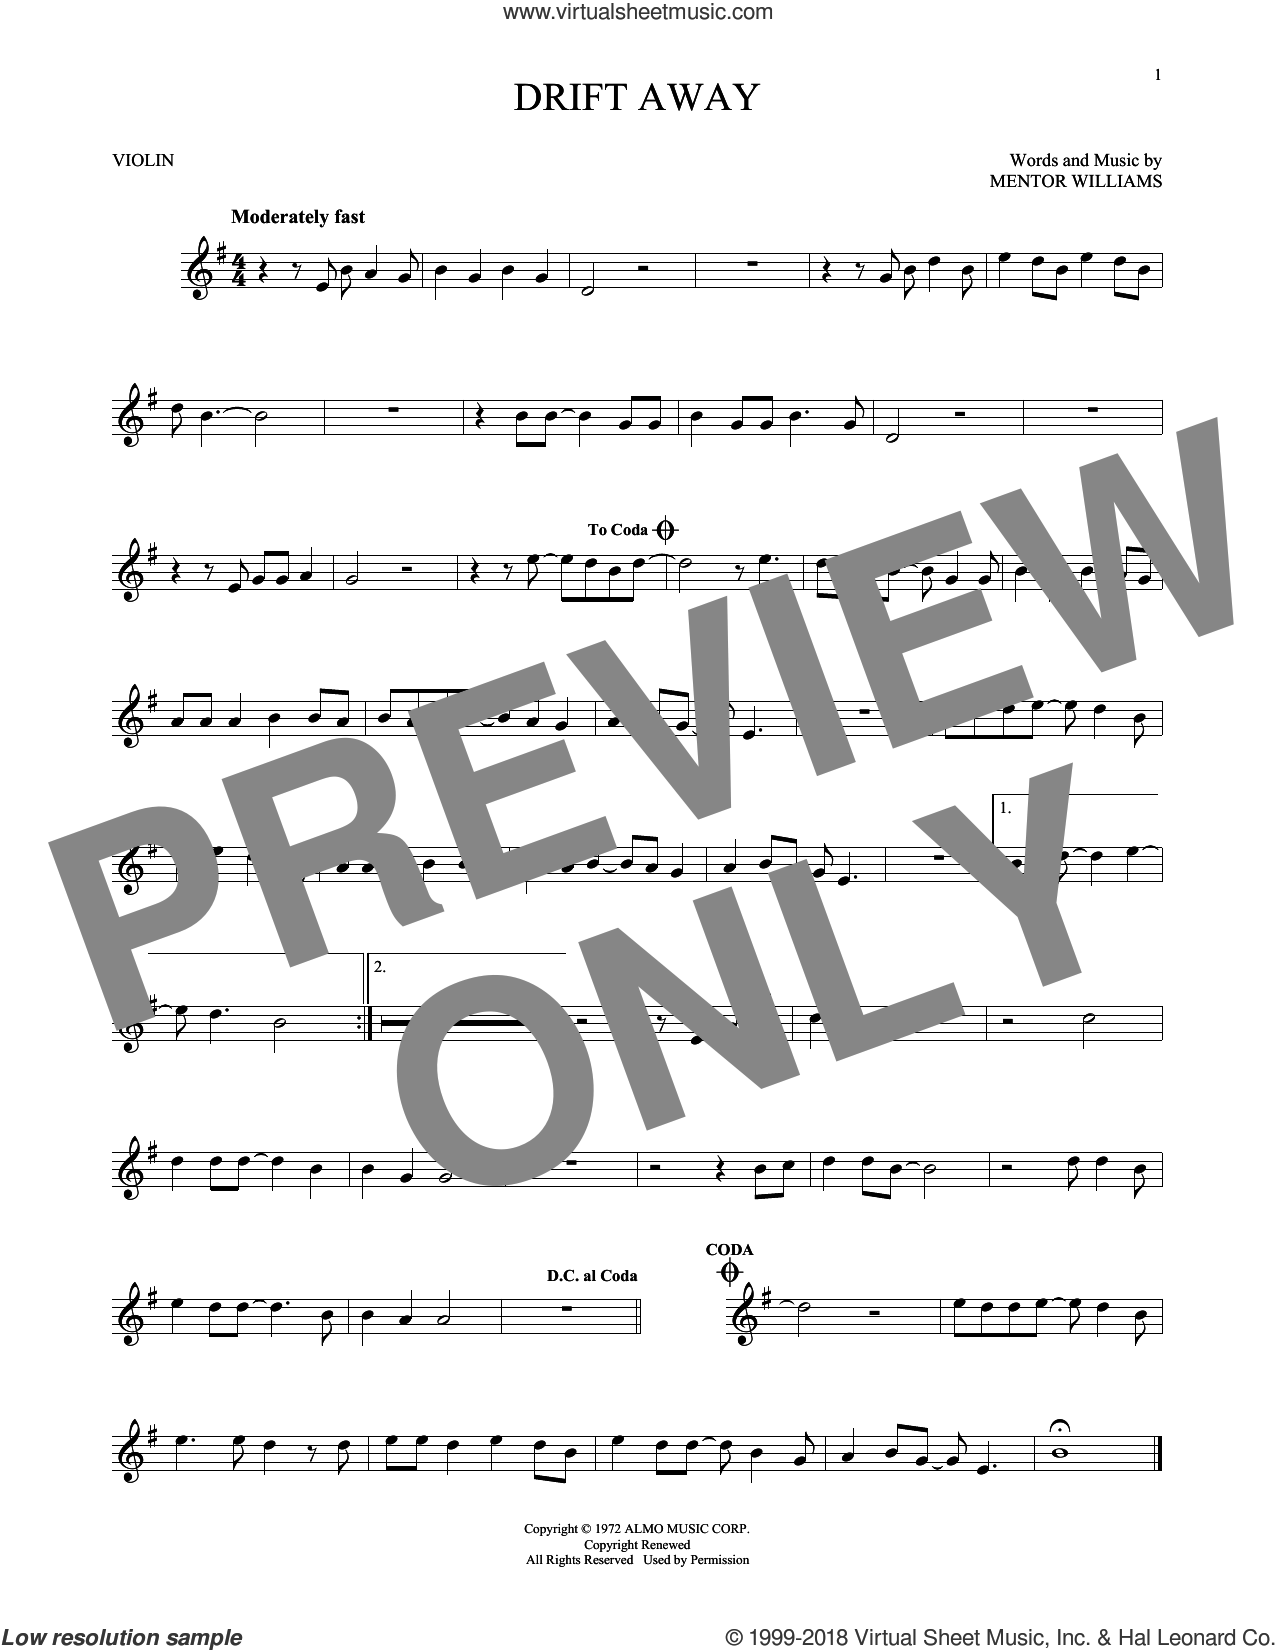 Drift Away sheet music for violin solo by Dobie Gray and Mentor Williams, intermediate skill level